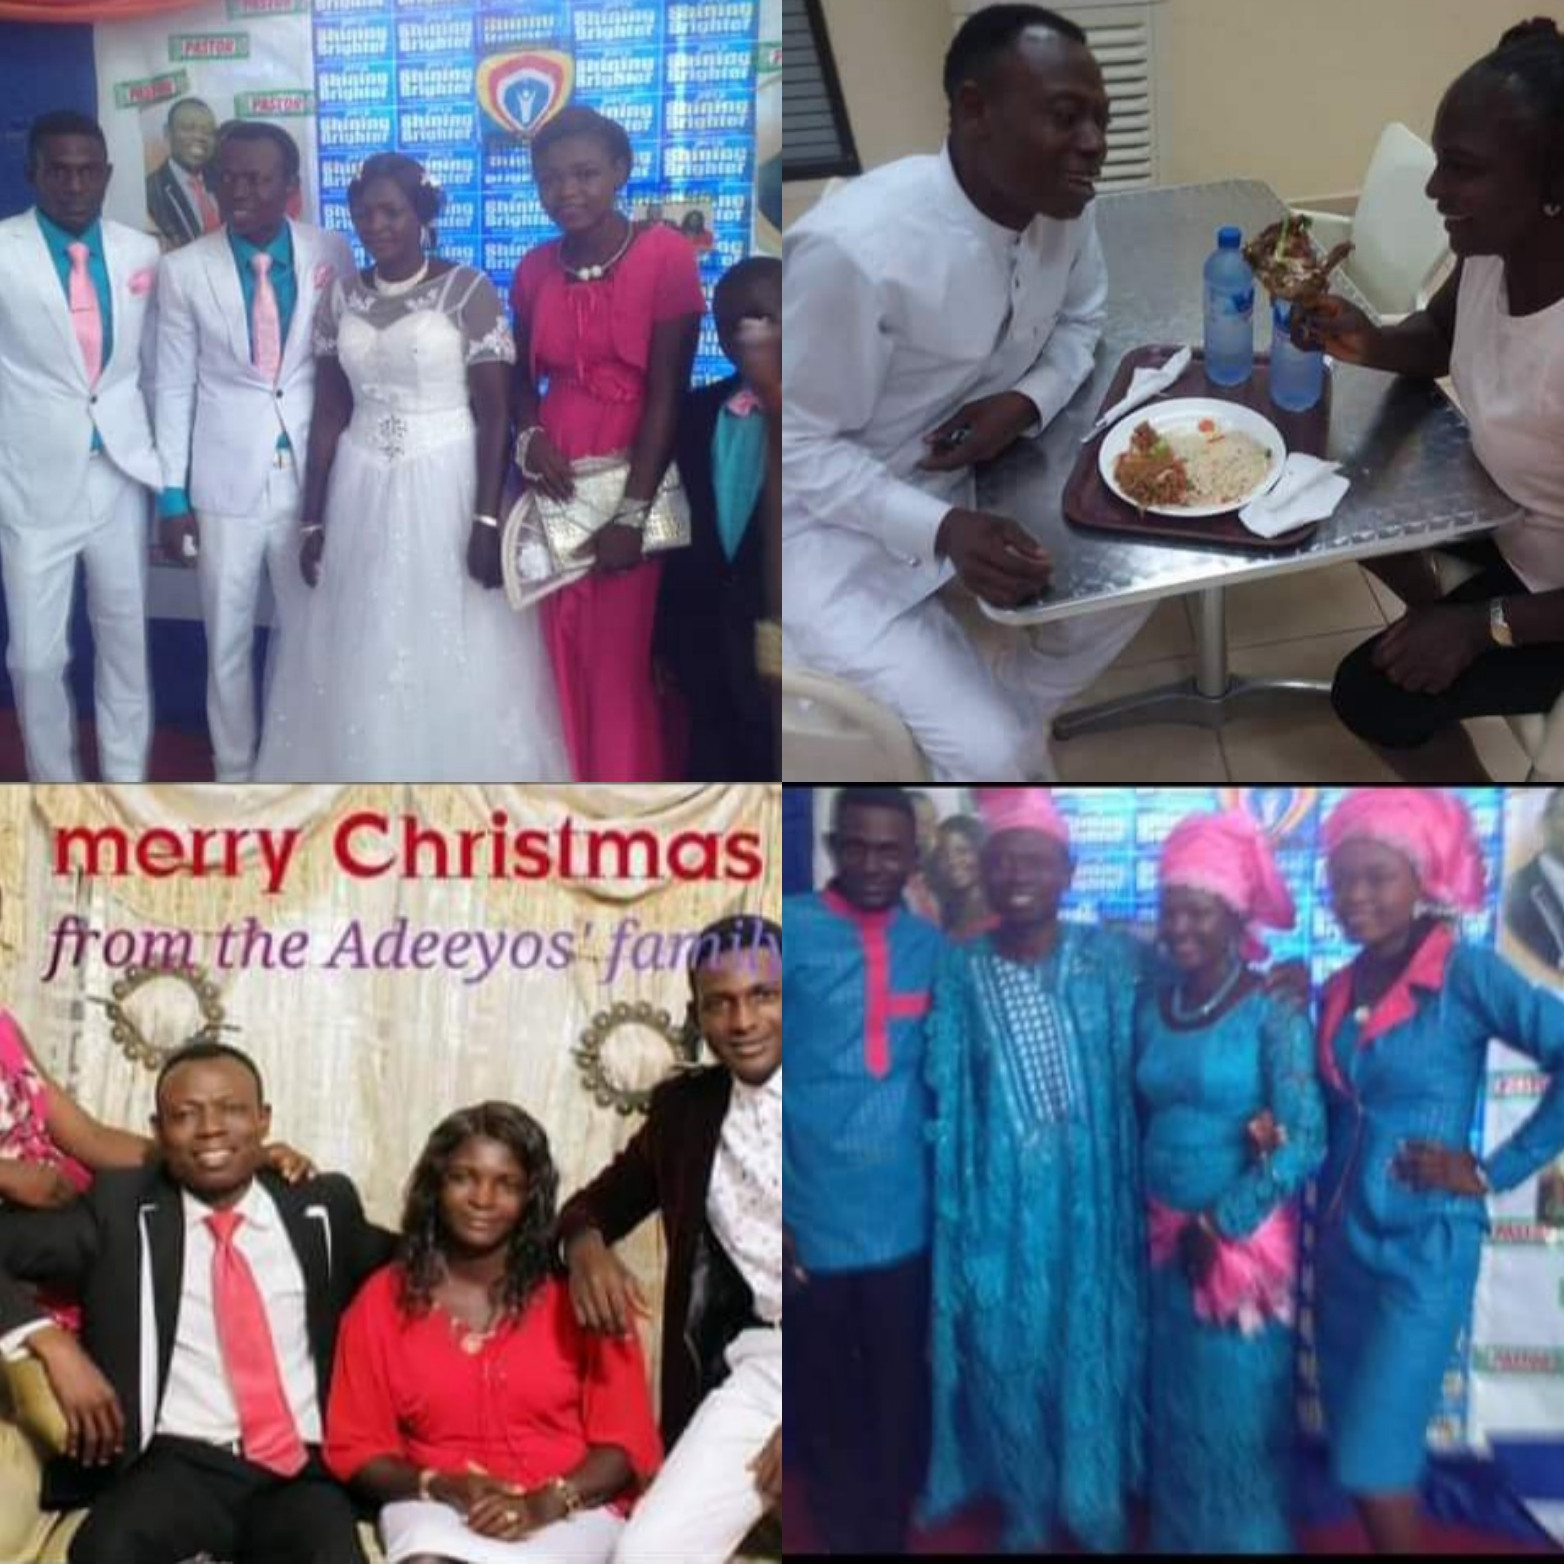 Son of pastor who married member's wife releases family photos of Pastor Moses with his first wife